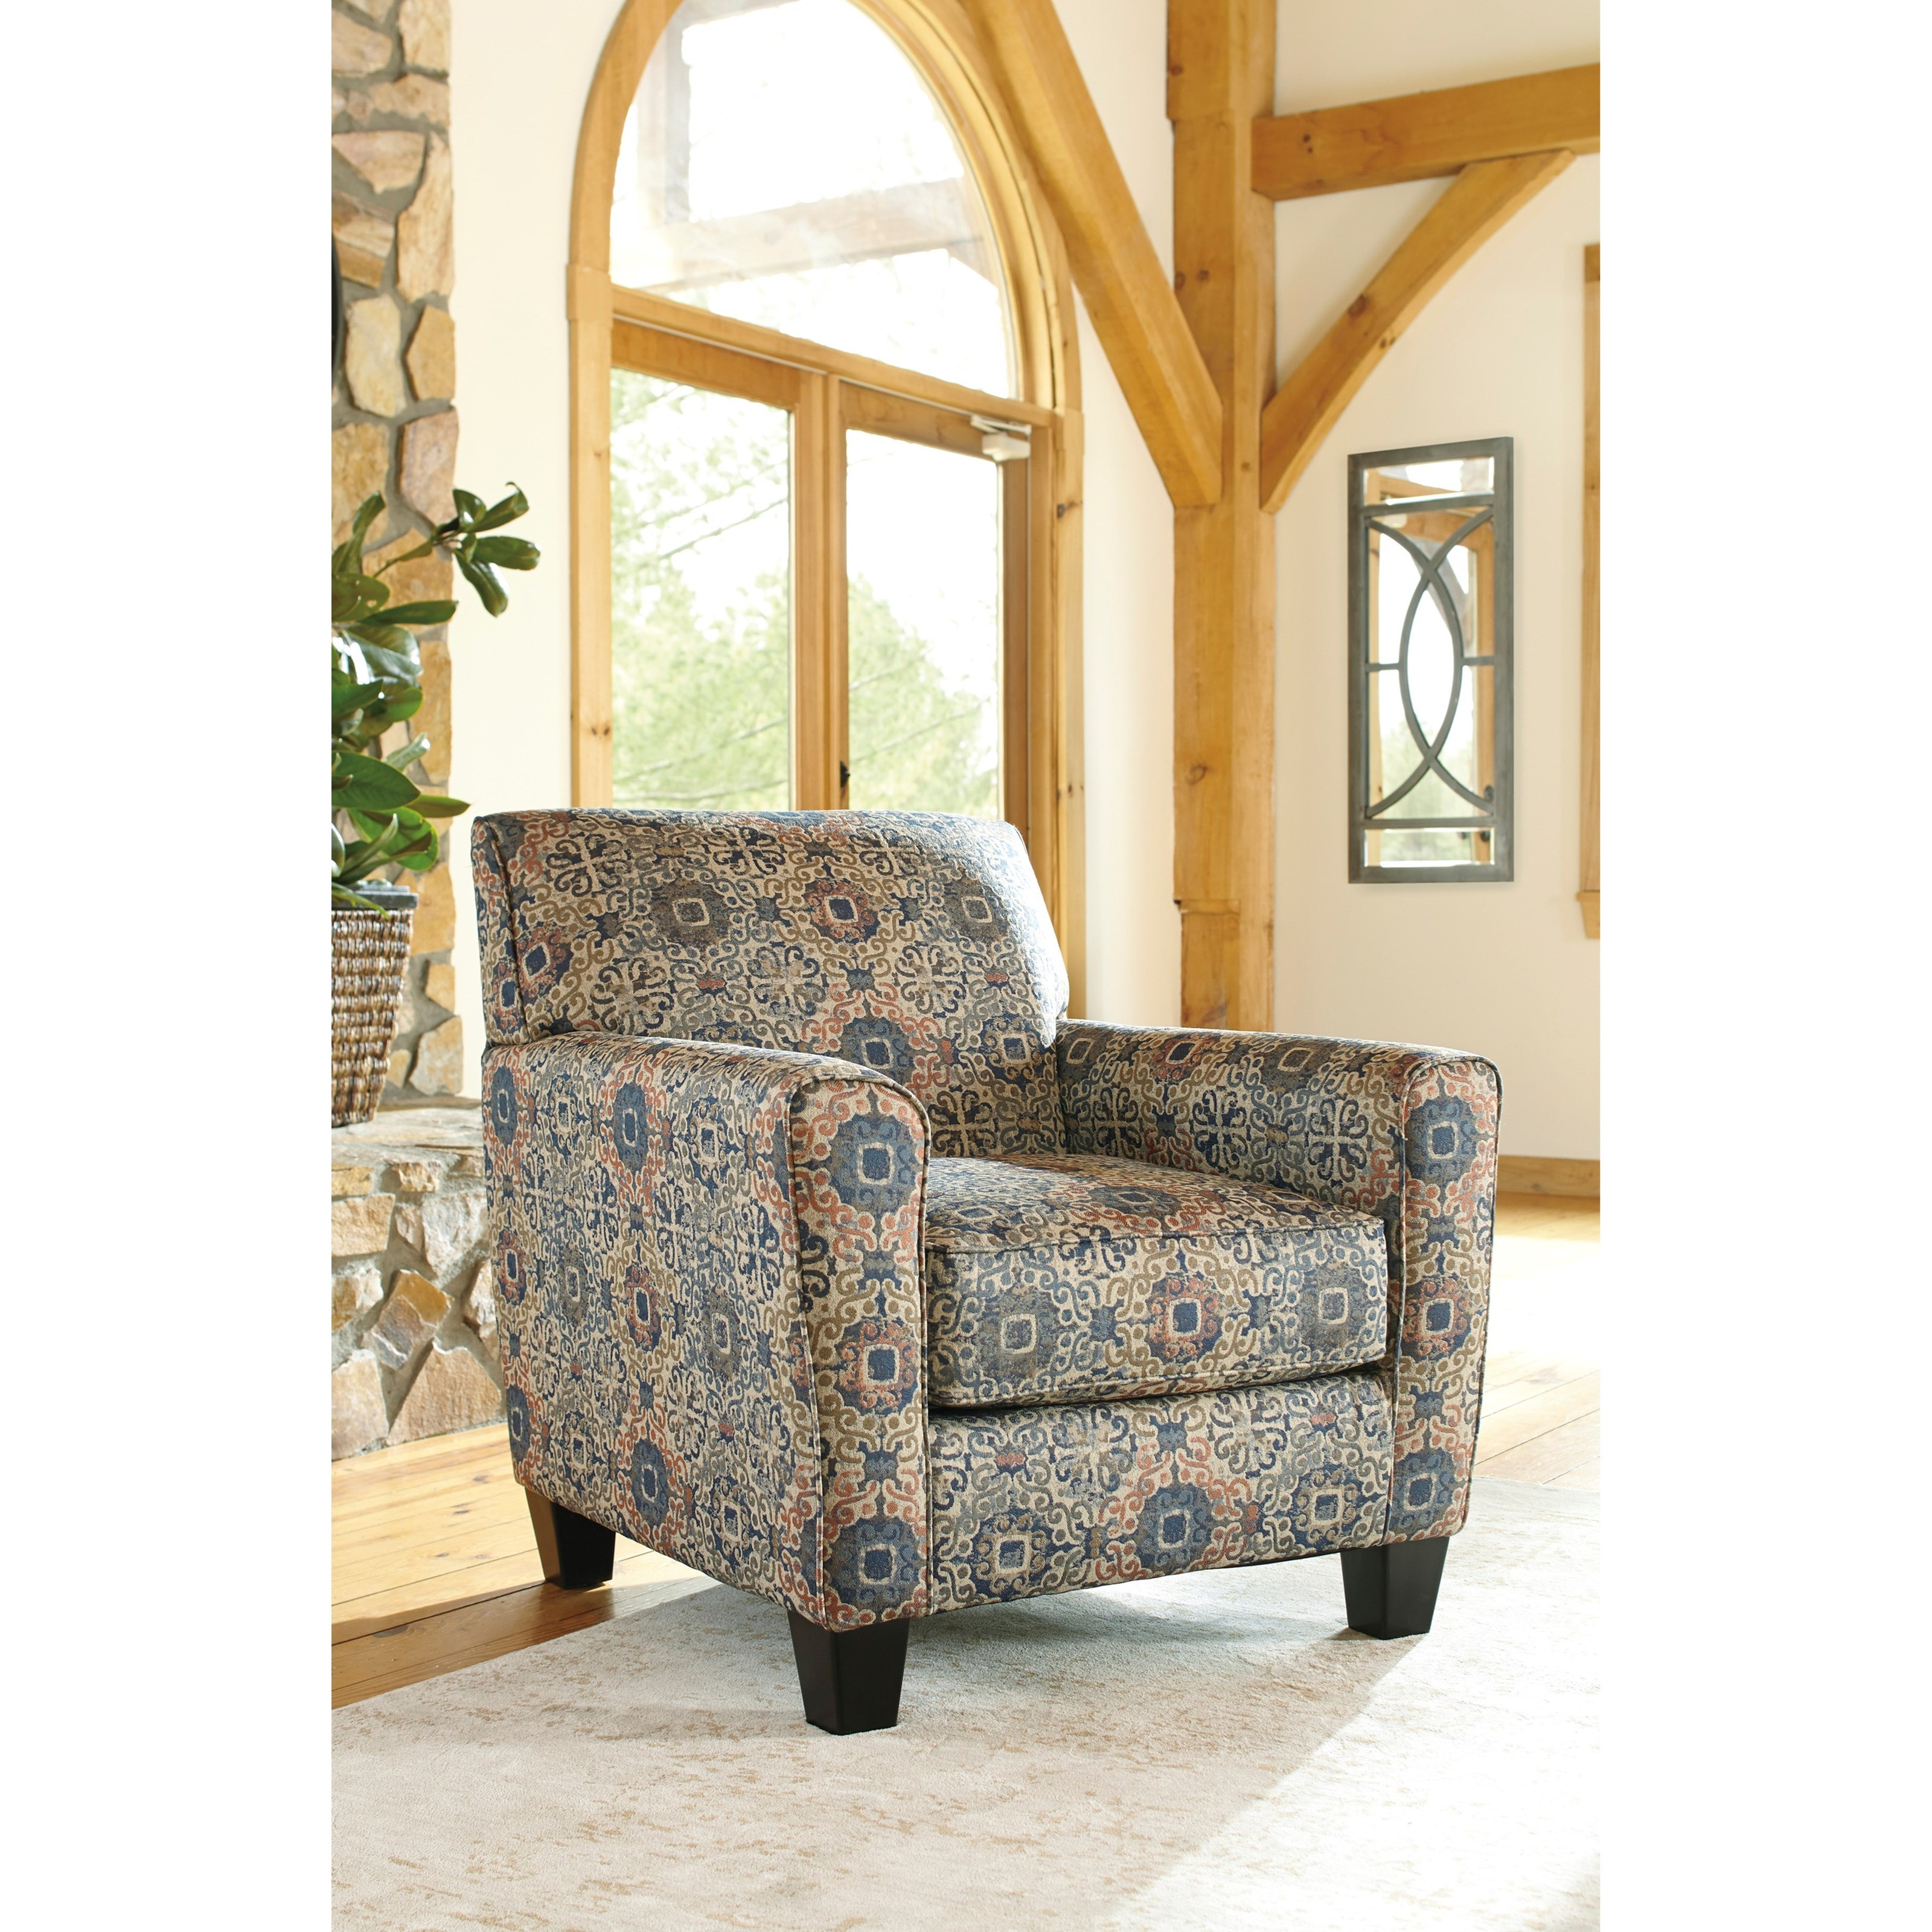 Ashley Furniture Outlet Wausau: Ashley Furniture Belcampo 1340521 Accent Chair With